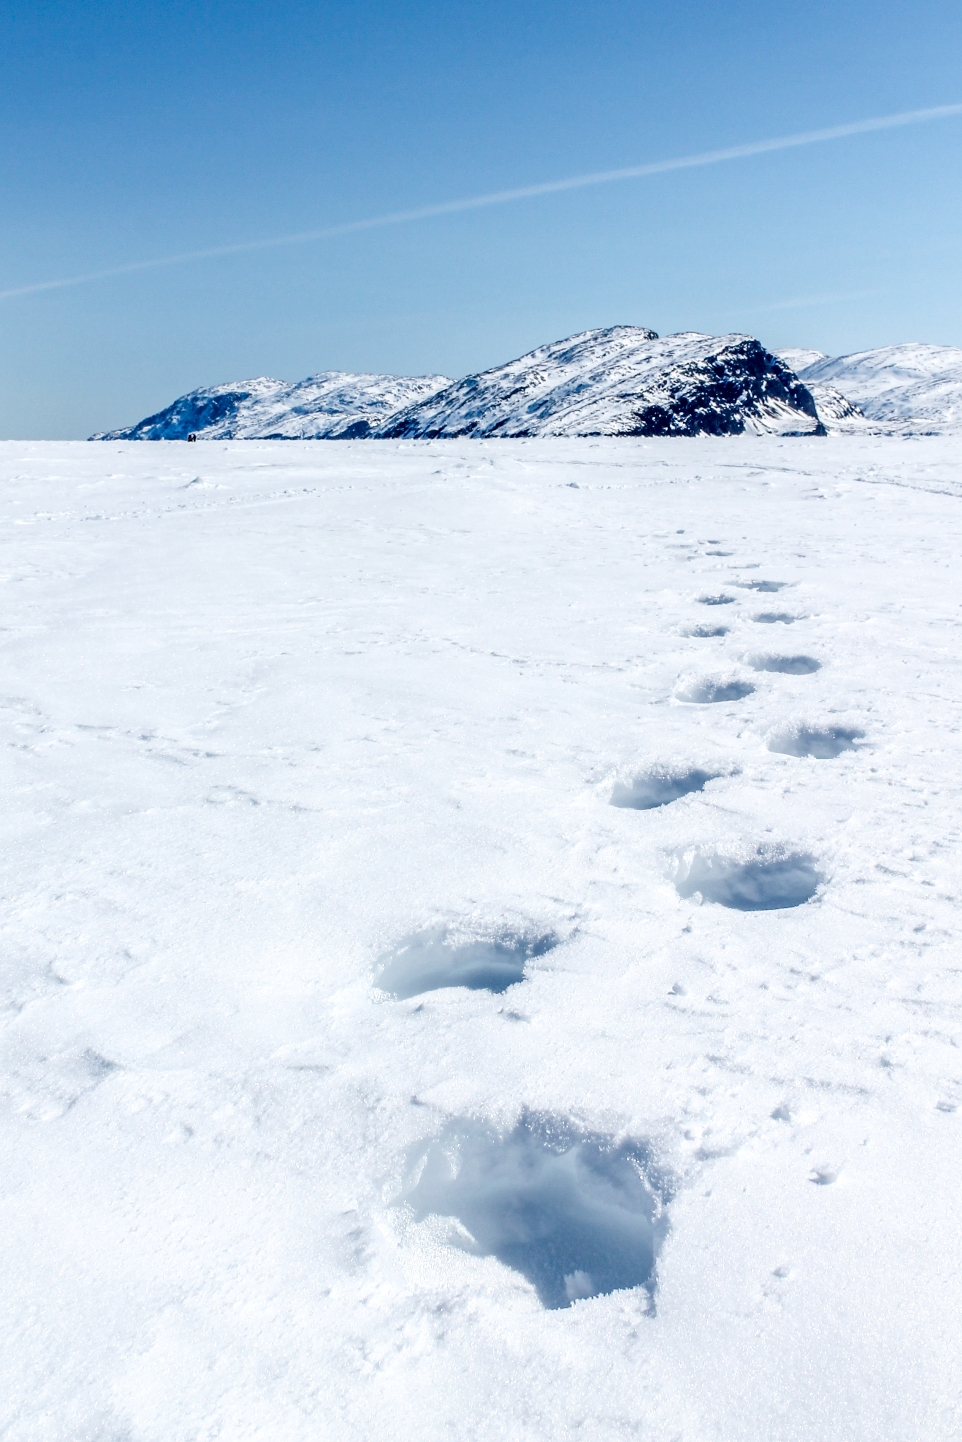 These are polar bear paw prints. They were blown in, meaning that they weren't fresh tracks. I don't know if I was happy or disappointed...